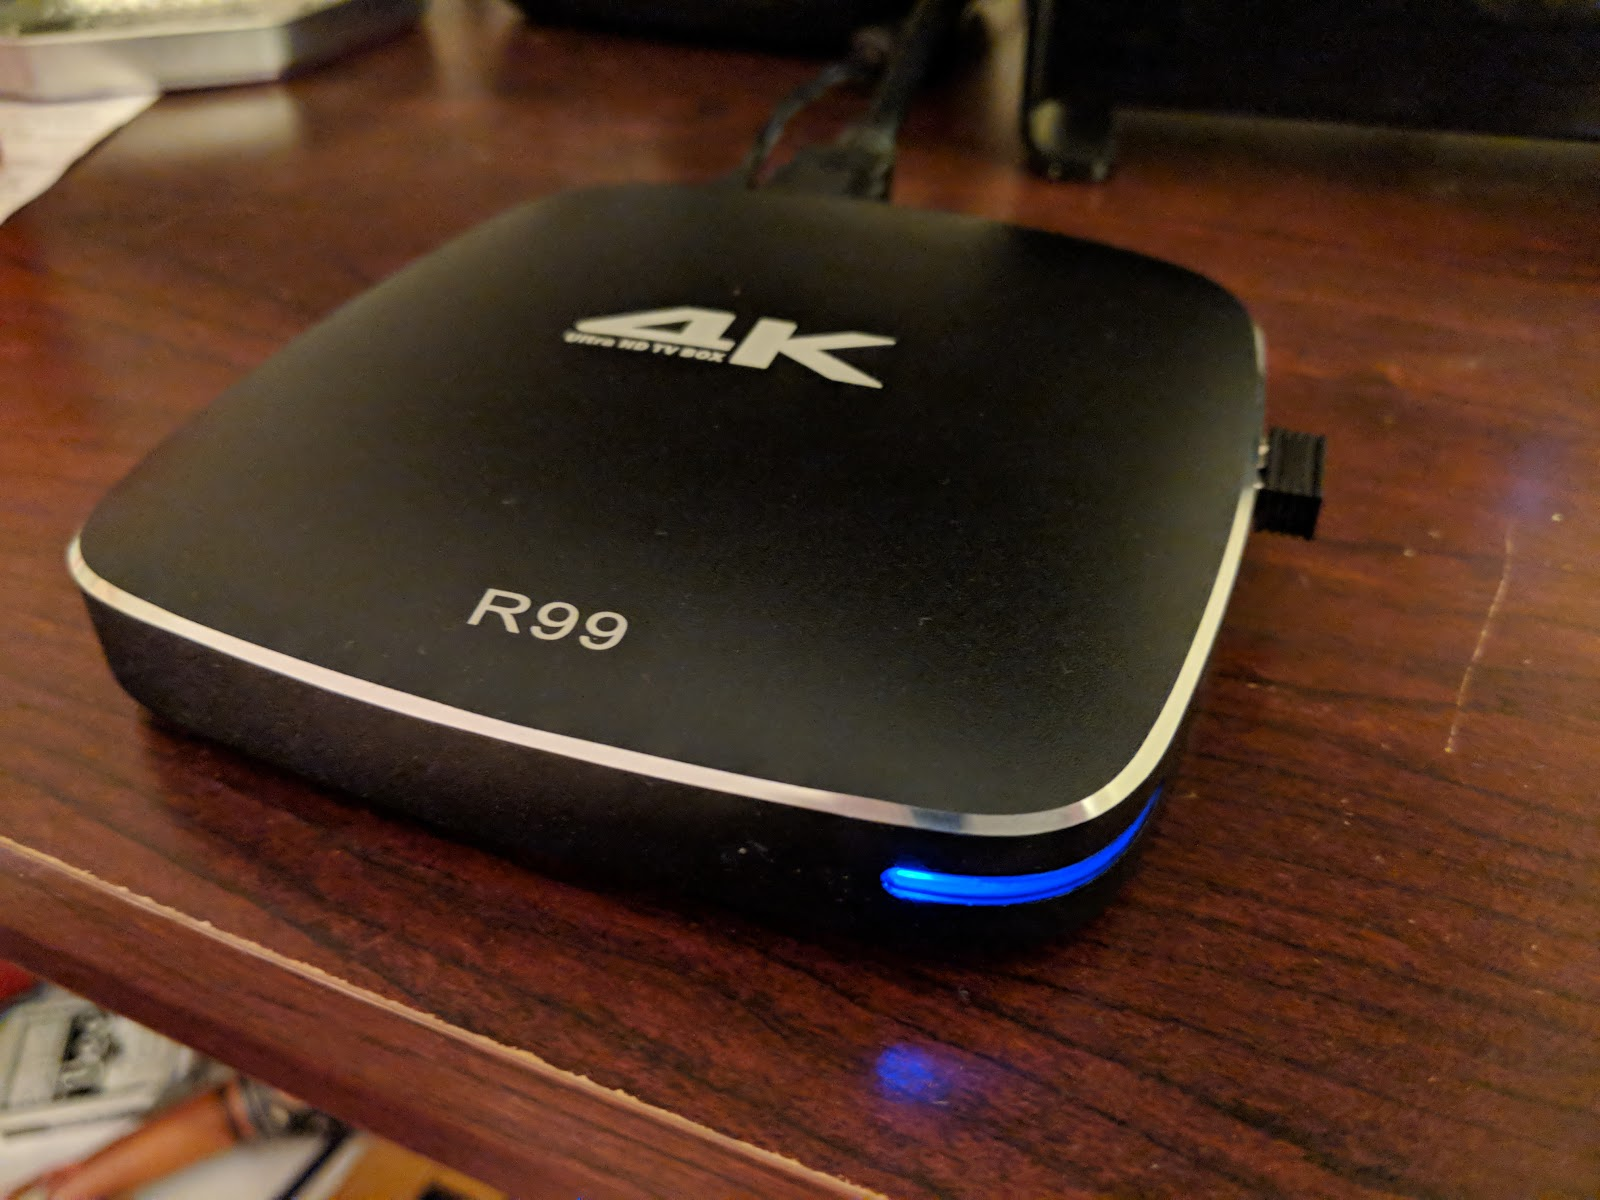 R99 Ebox for your holiday binge watching ~ Android Coliseum